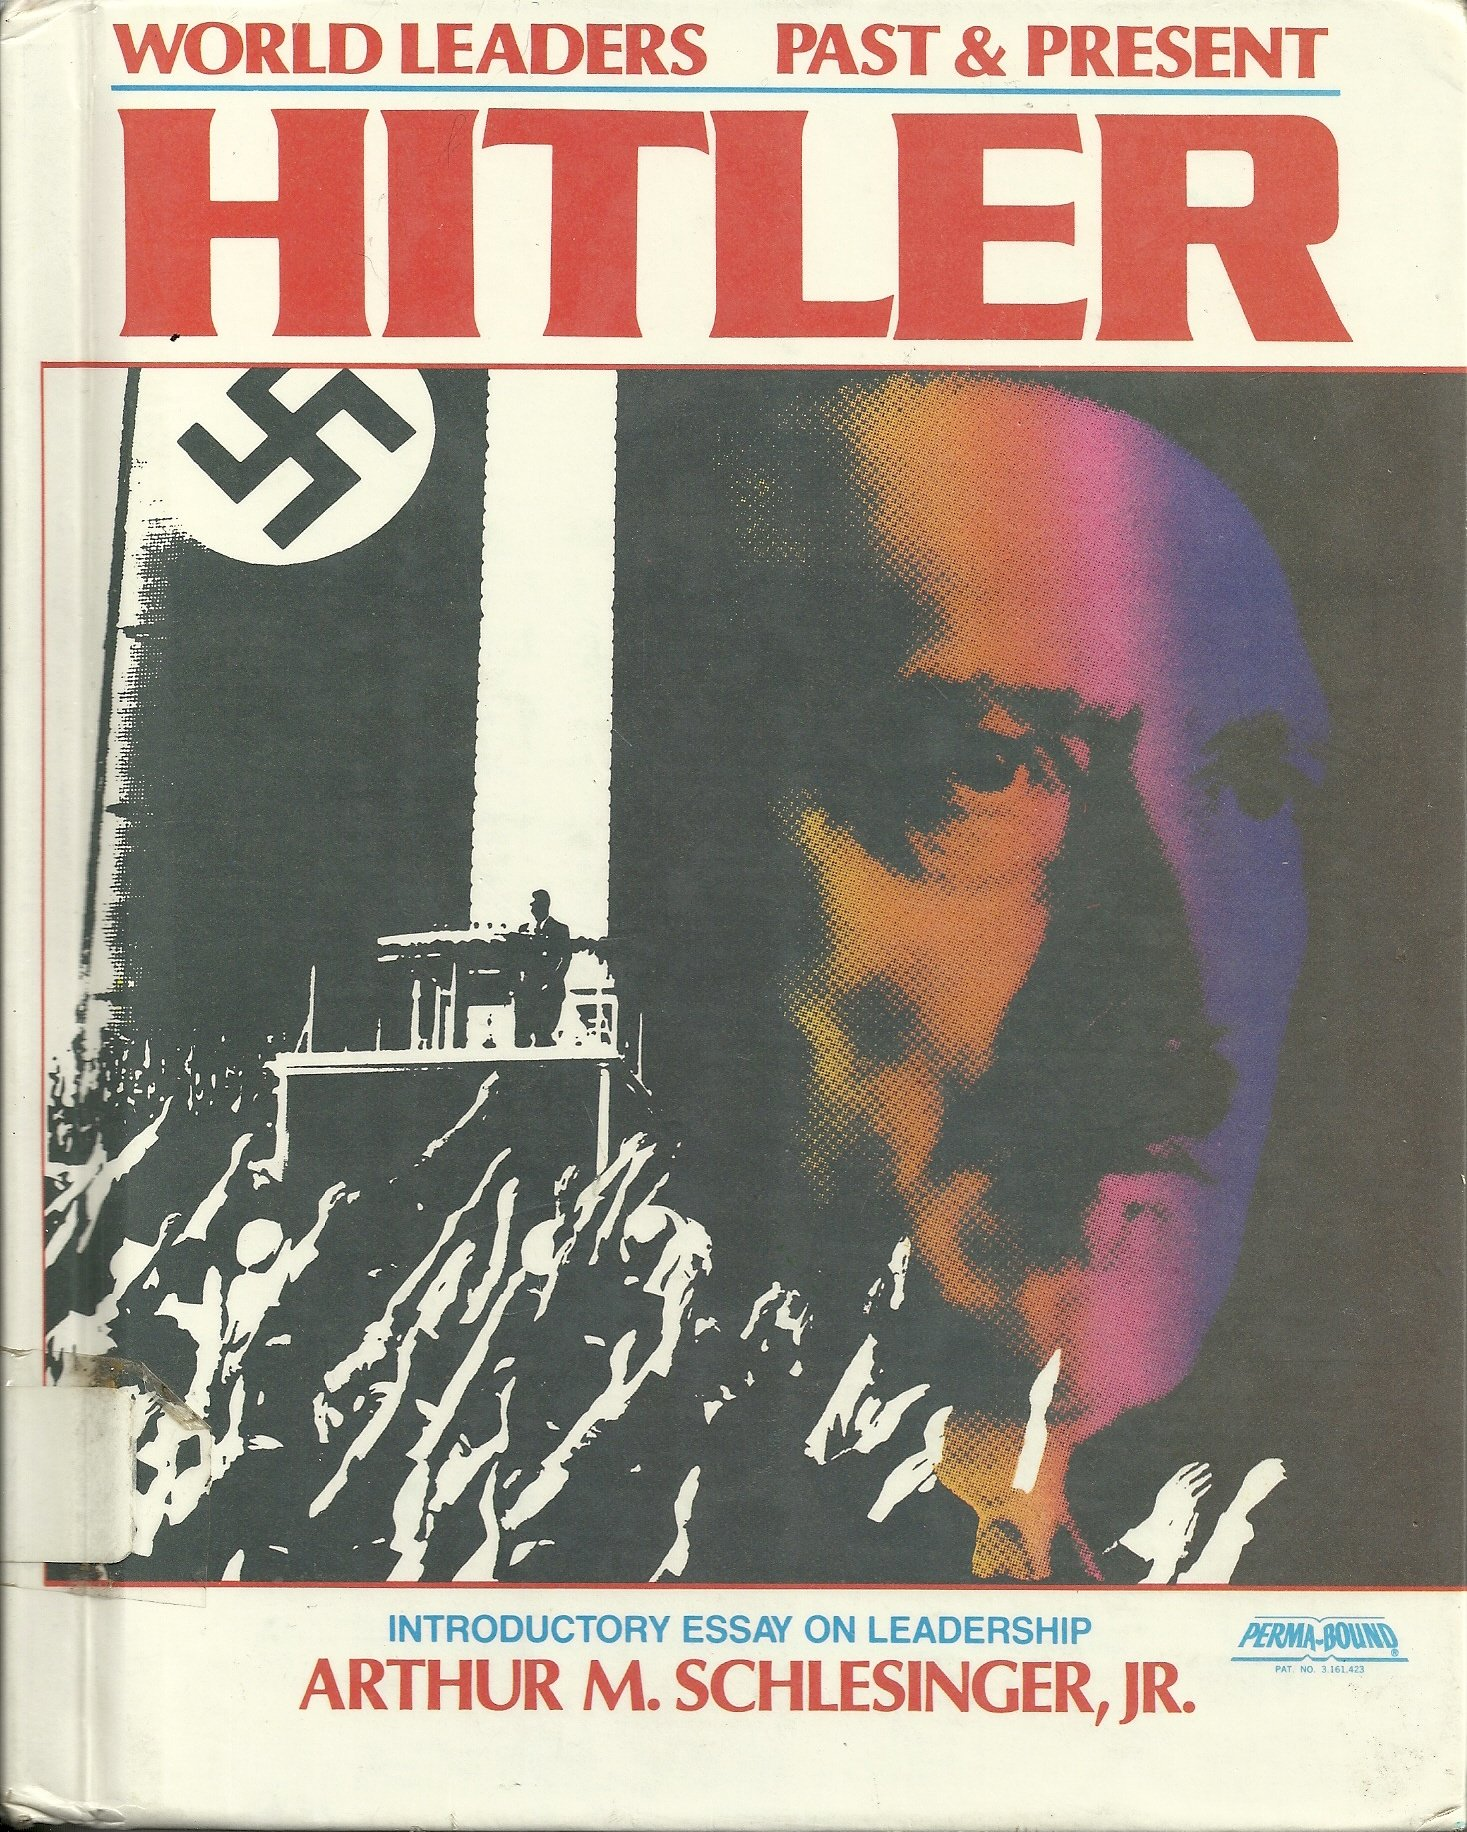 adolf hitler world leaders past present dennis wepman arthur adolf hitler world leaders past present dennis wepman arthur meier jr schlesinger 9780877545781 com books